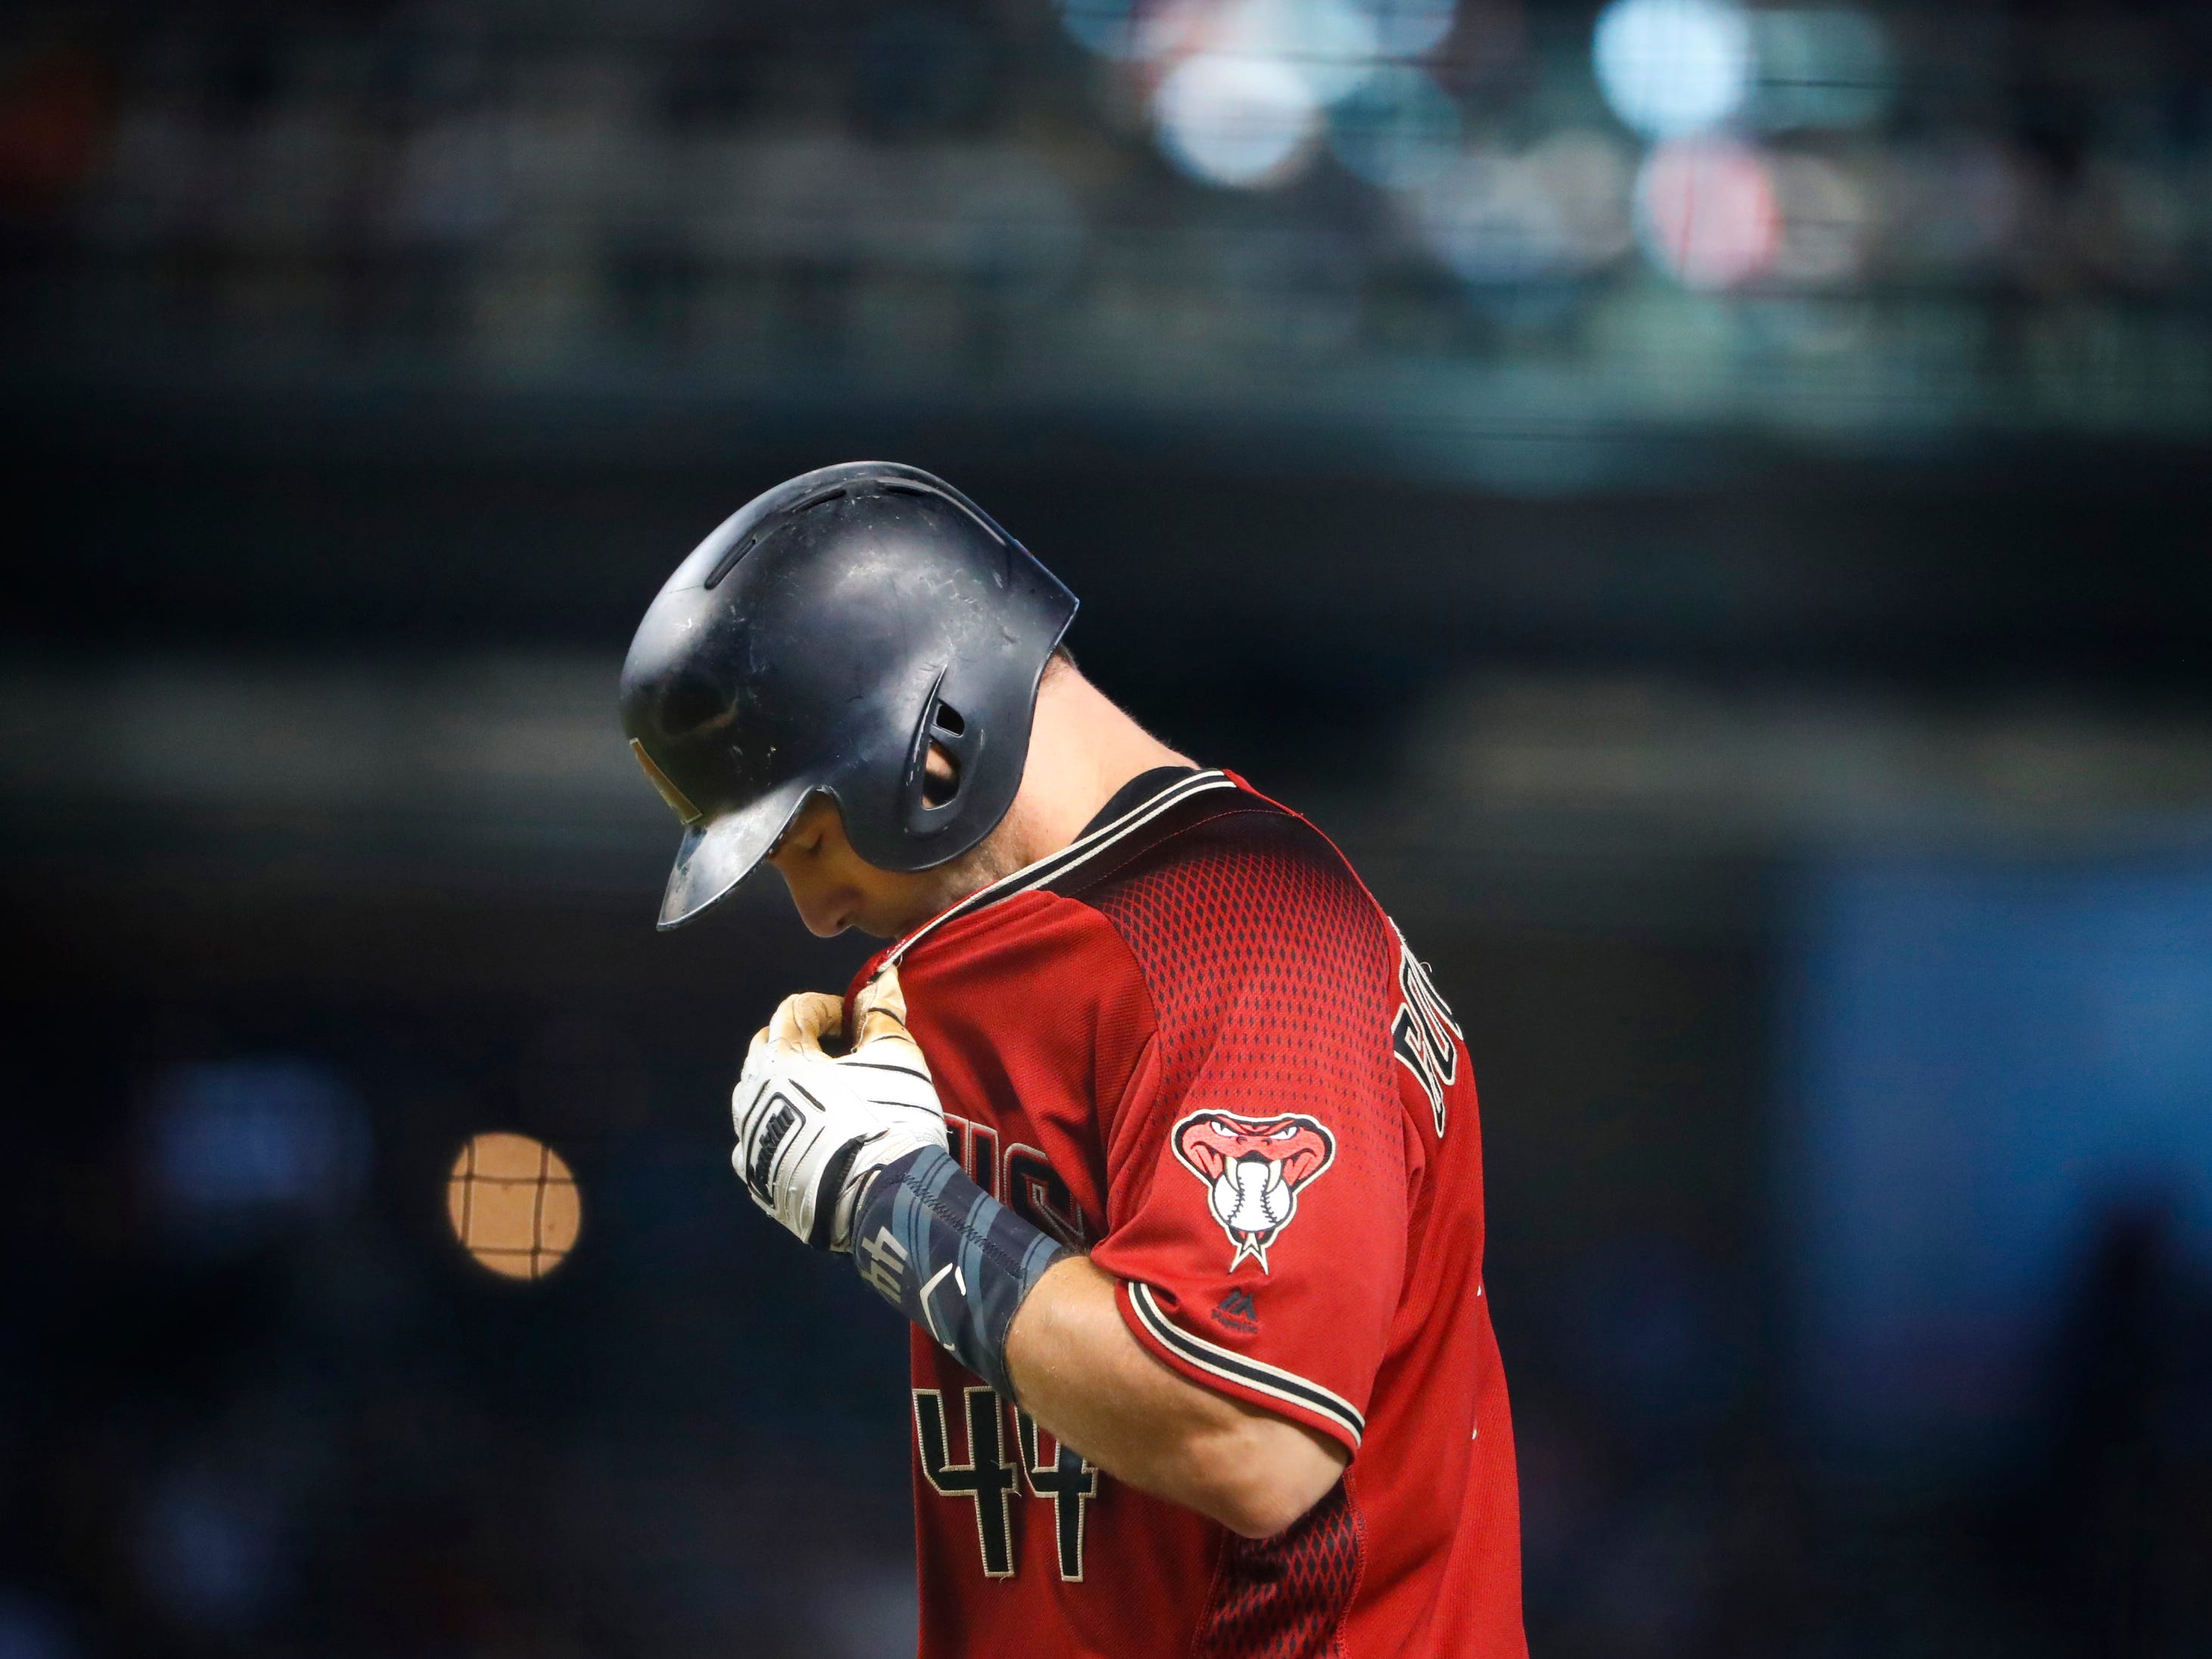 Diamondbacks Paul Goldschmidt (44) reacts after flying out in the fourth inning against the Rockies at Chase Field on Sept. 23, 2018.